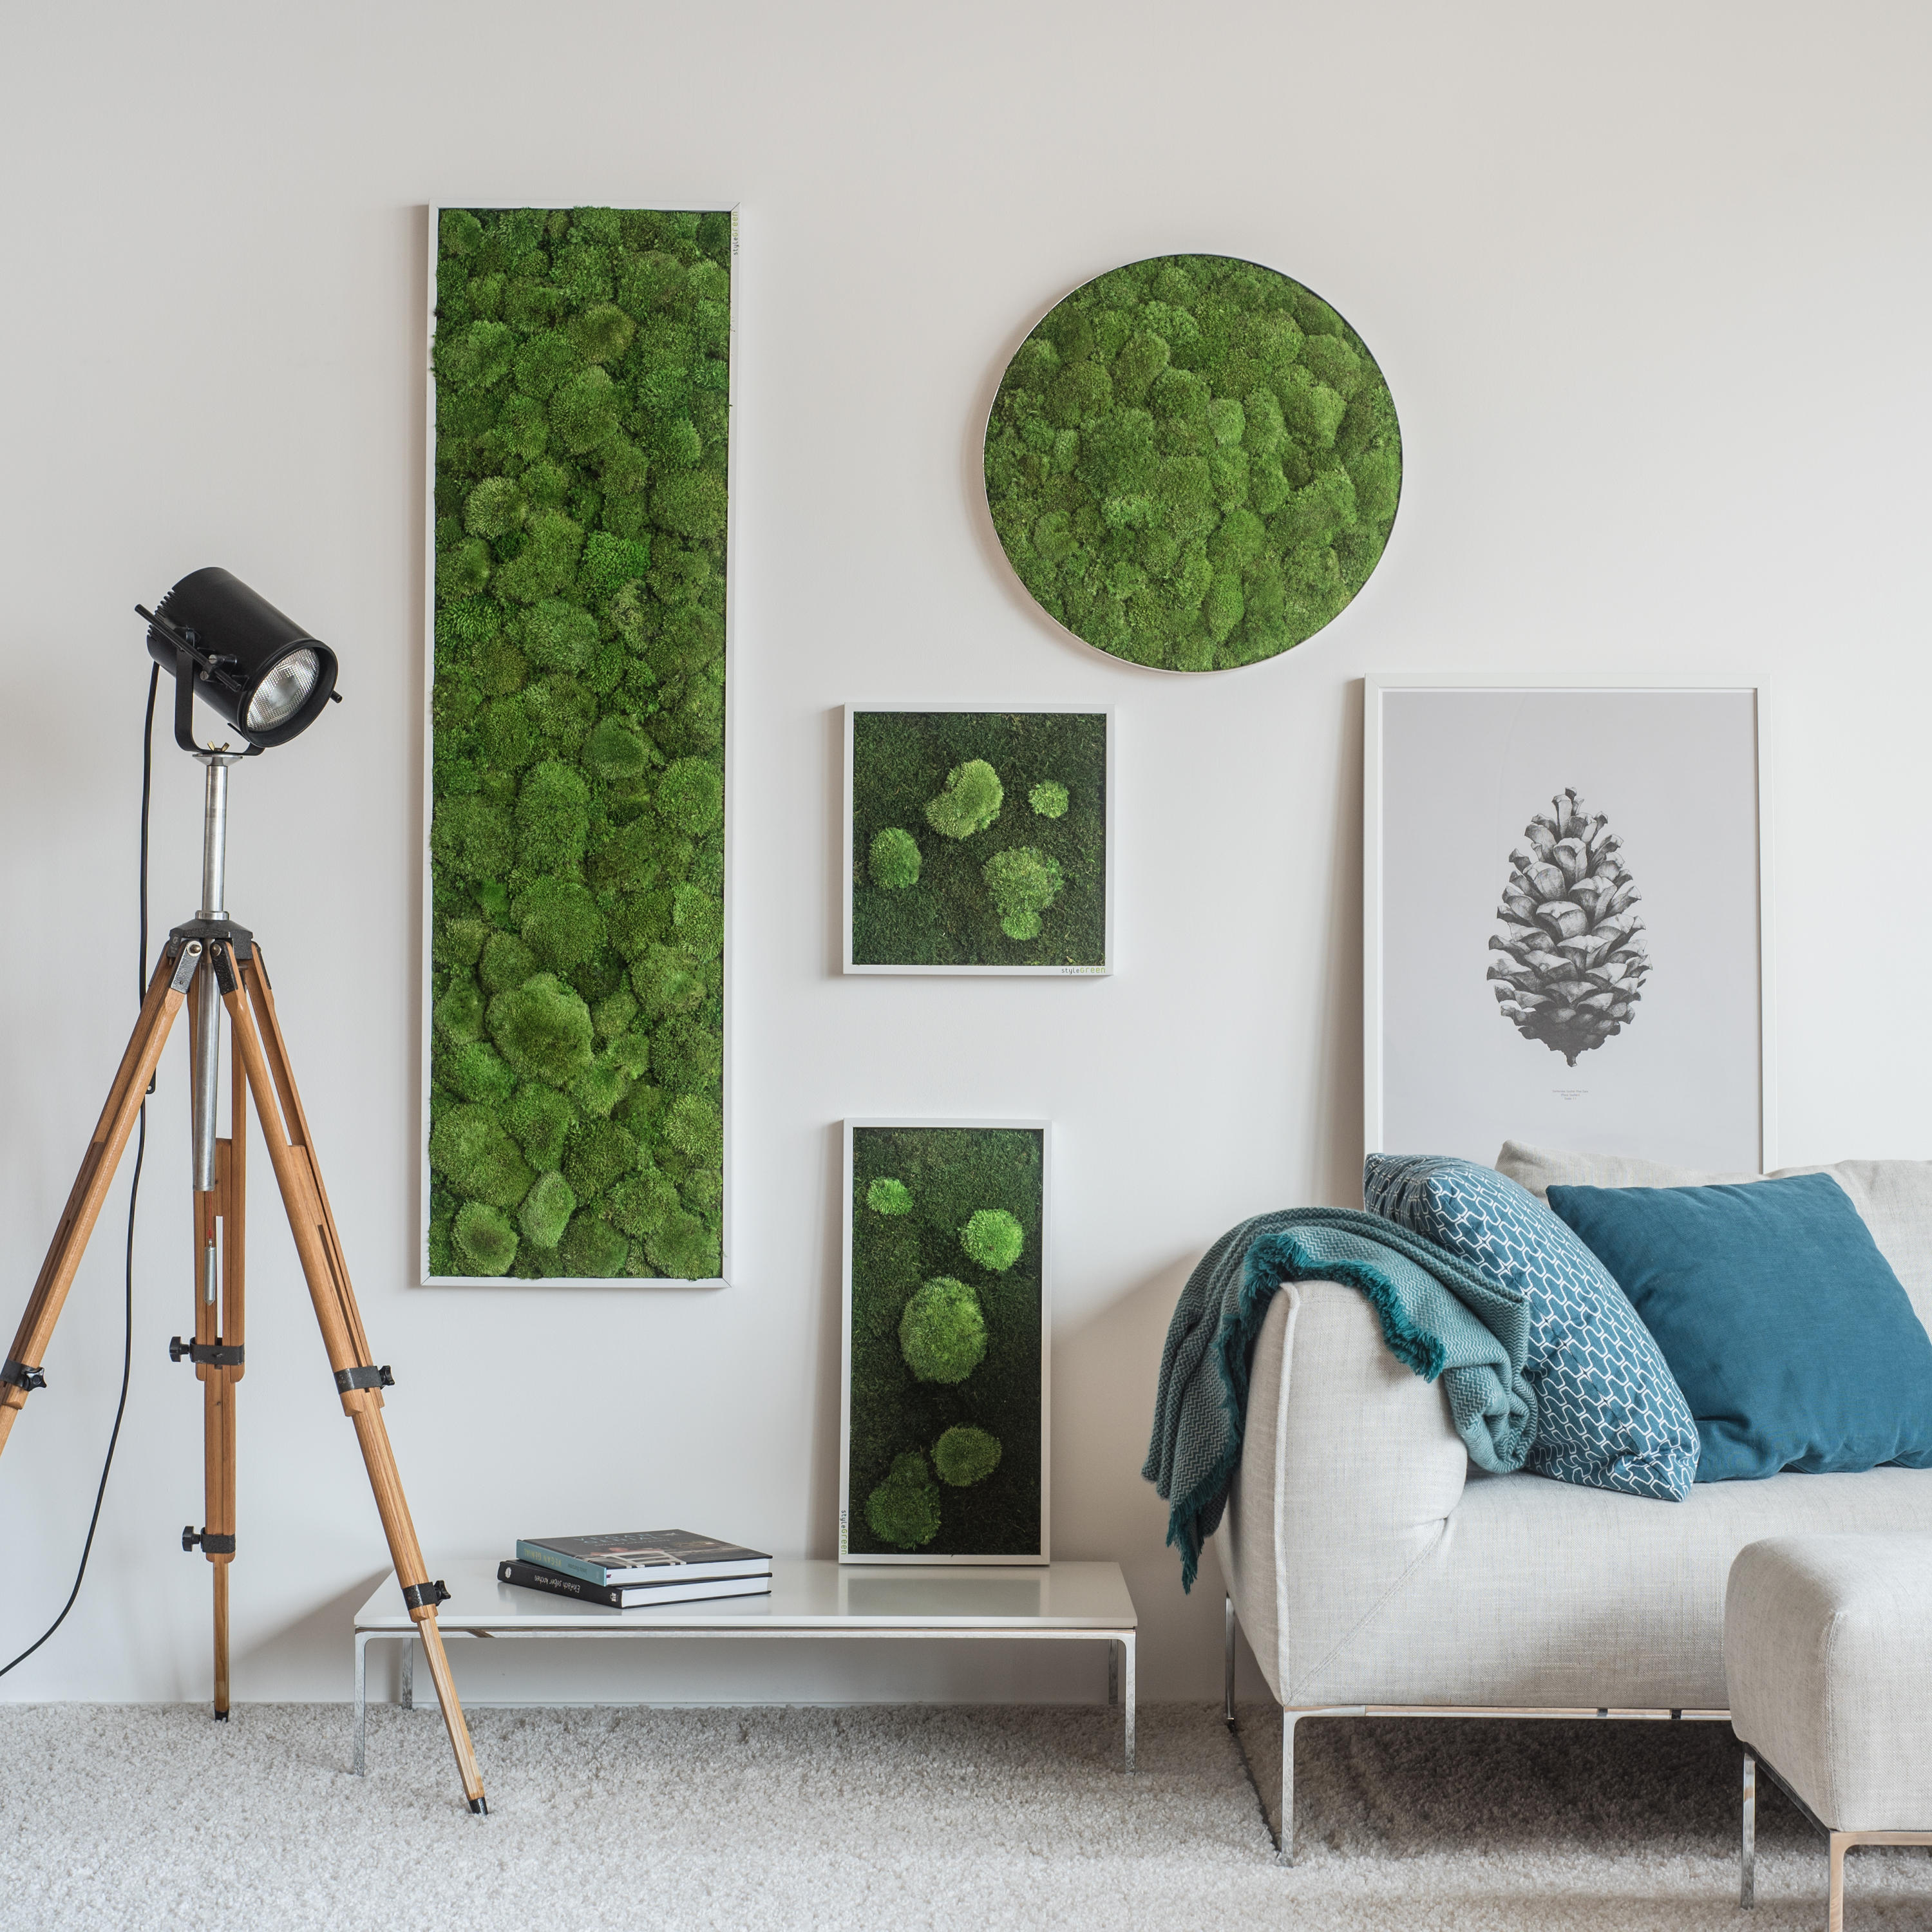 Moss picture pole and forest moss picture 80x80cm wall for Style green